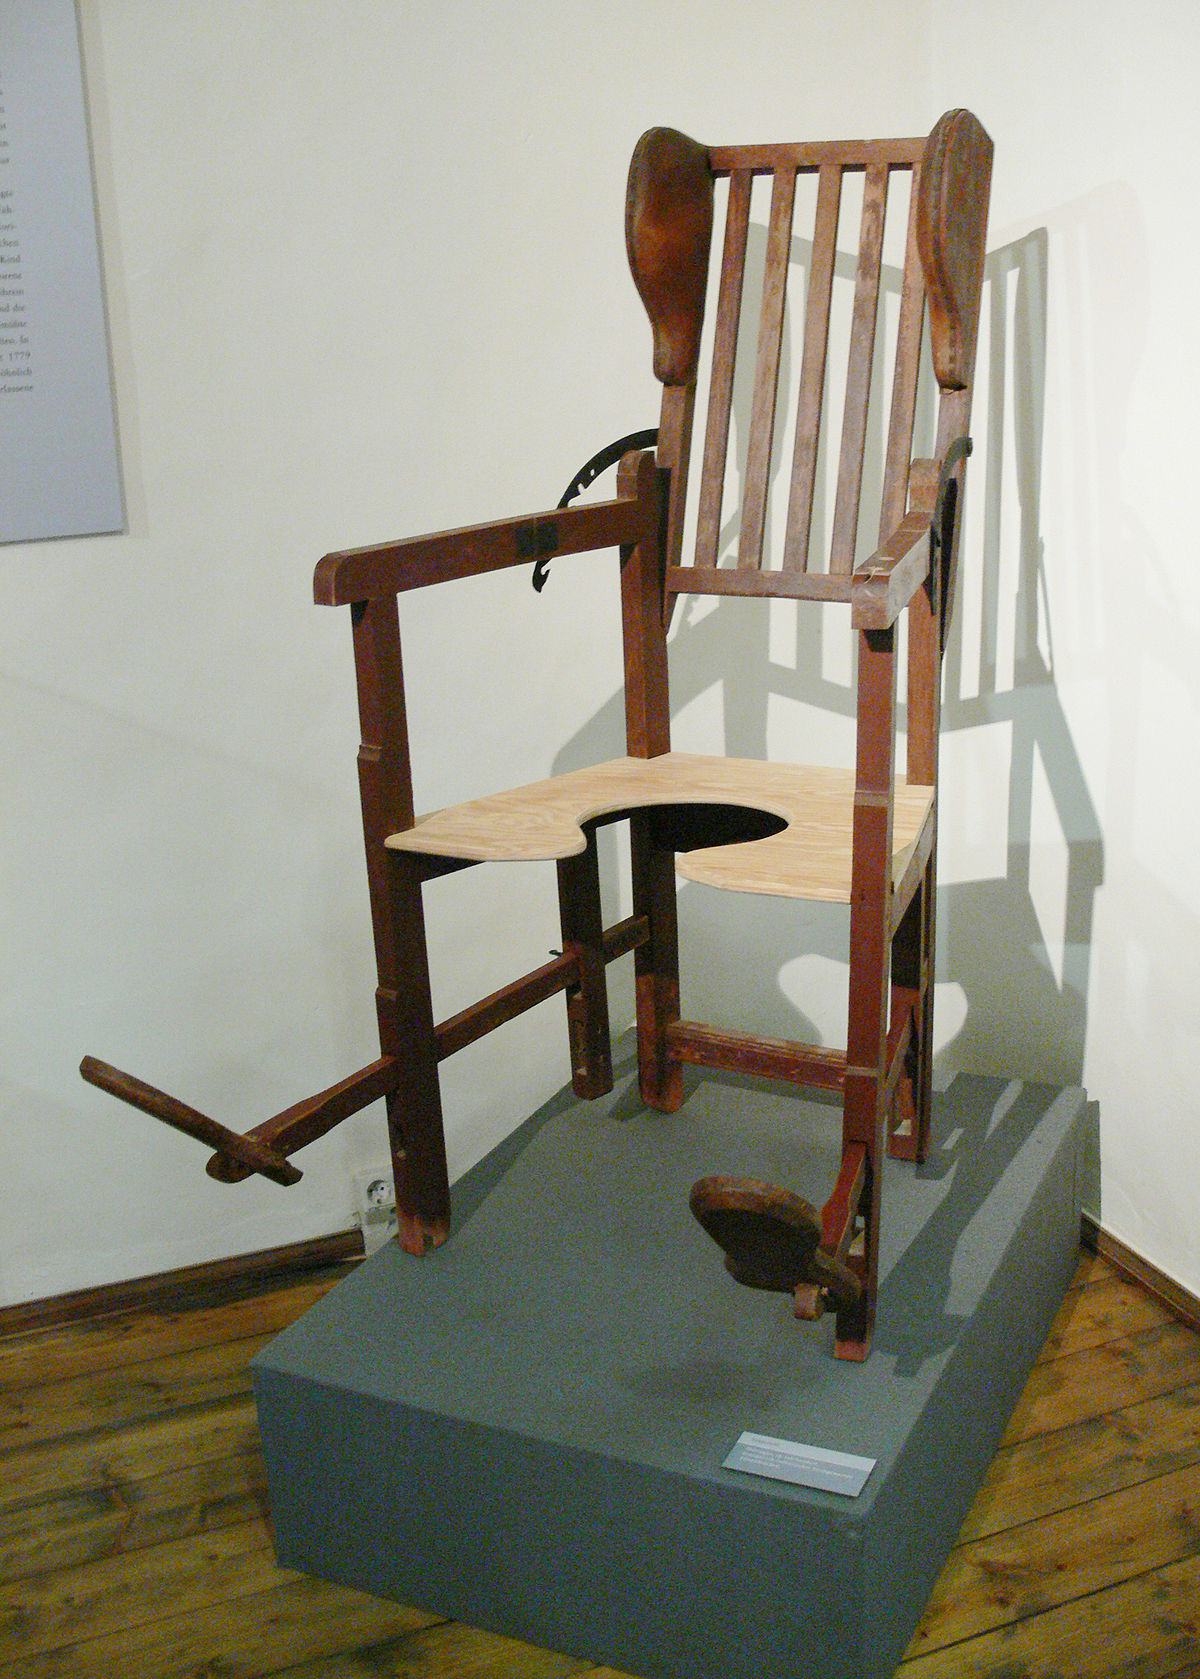 - Birthing Chair - Wikipedia